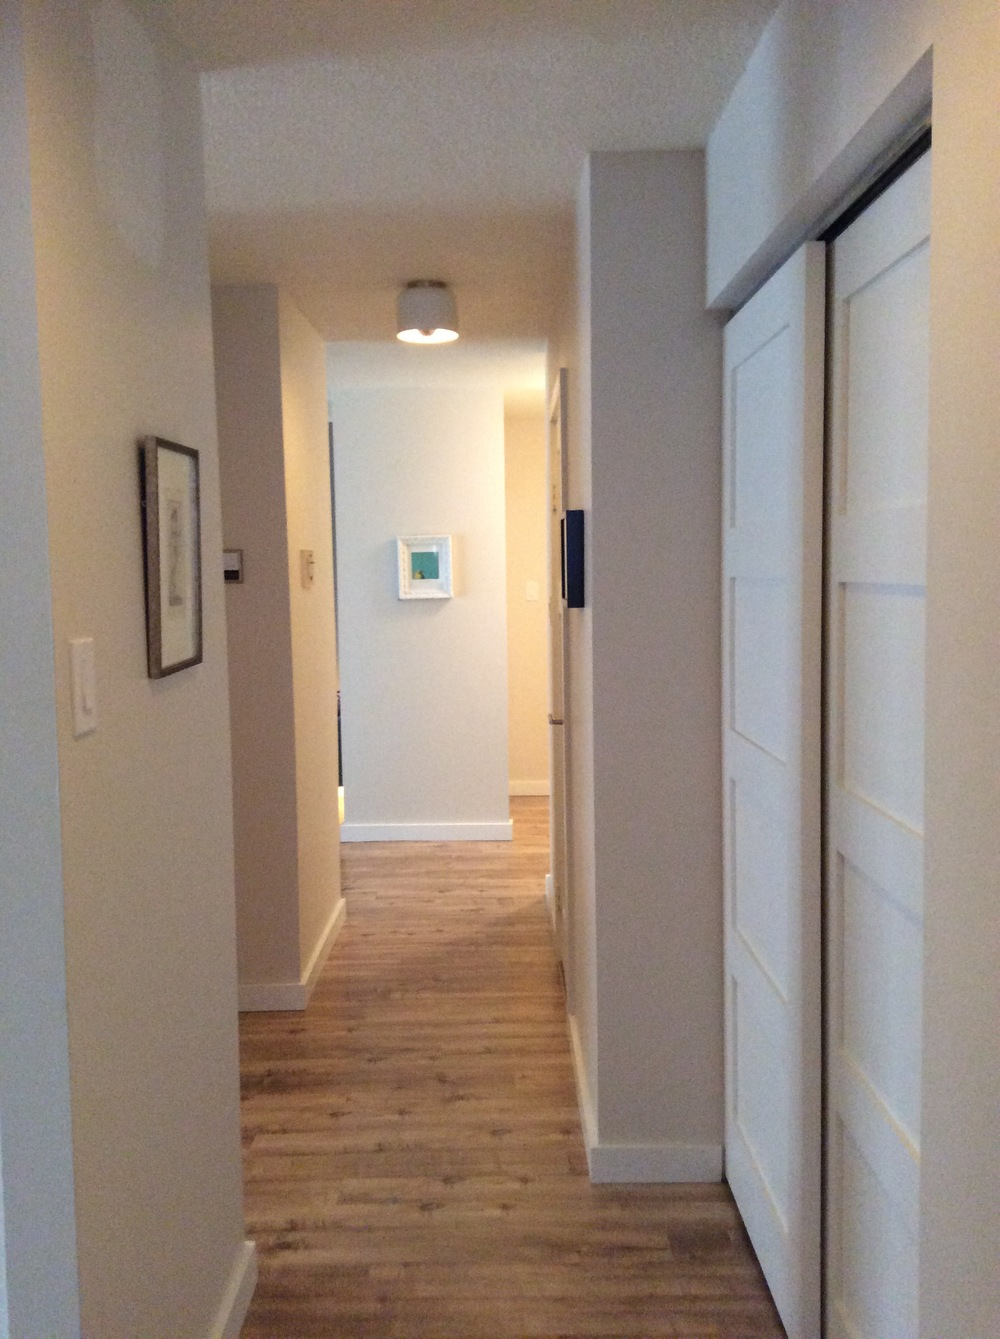 CB2 light fixtures, sliding barn style closet doors, laminate flooring.